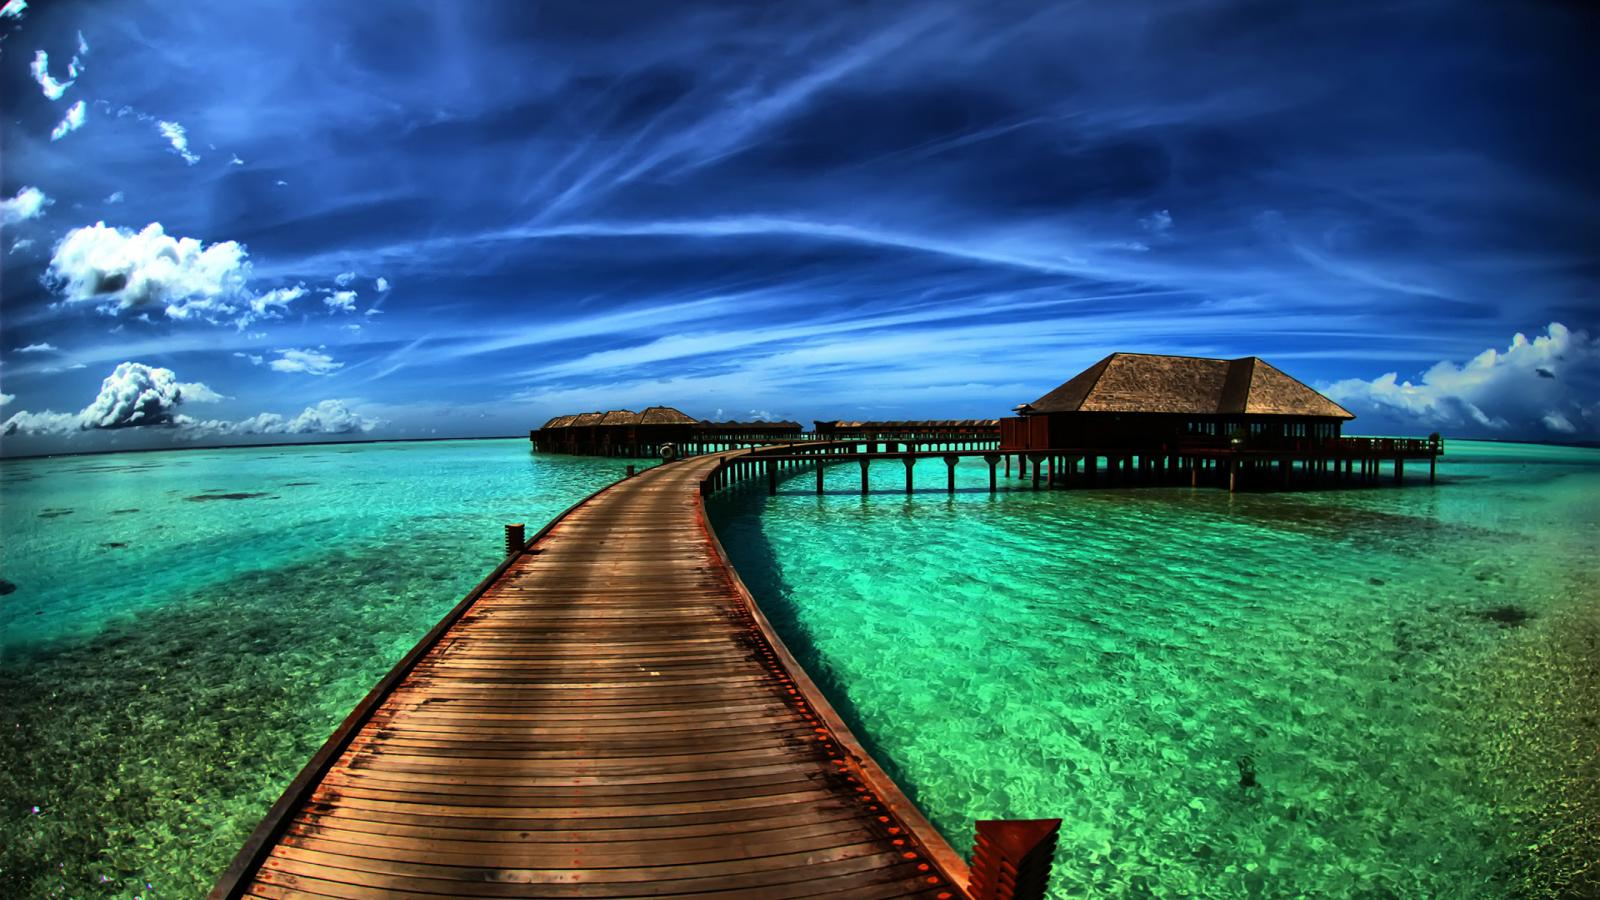 HD Wallpapers 1600x900 Nature Landscape Wallpapers 1600x900 Download 1600x900